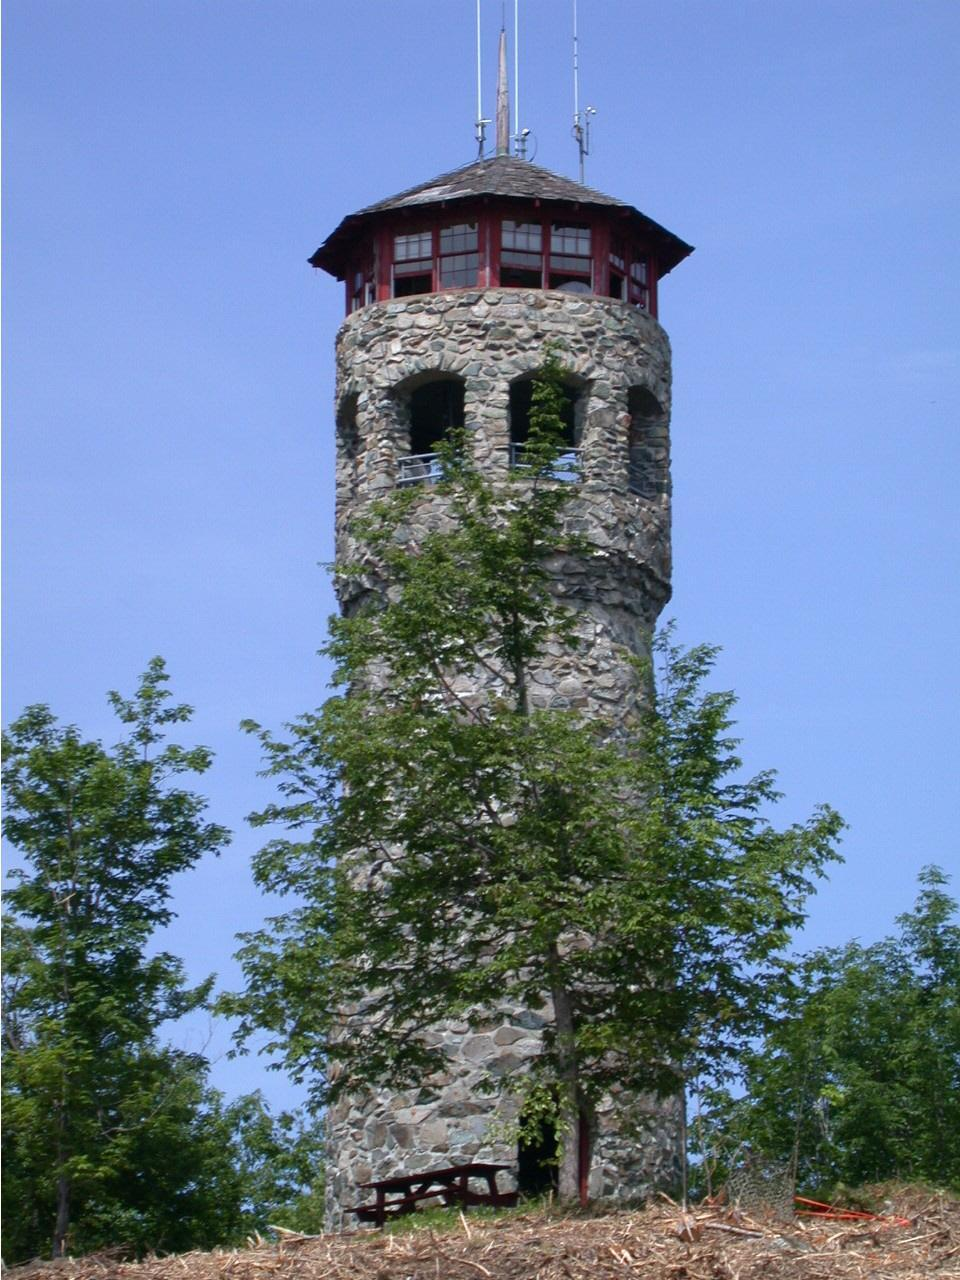 The Weeks Estate in Lancaster includes this fire lookout tower. Prepare for tremendous views!